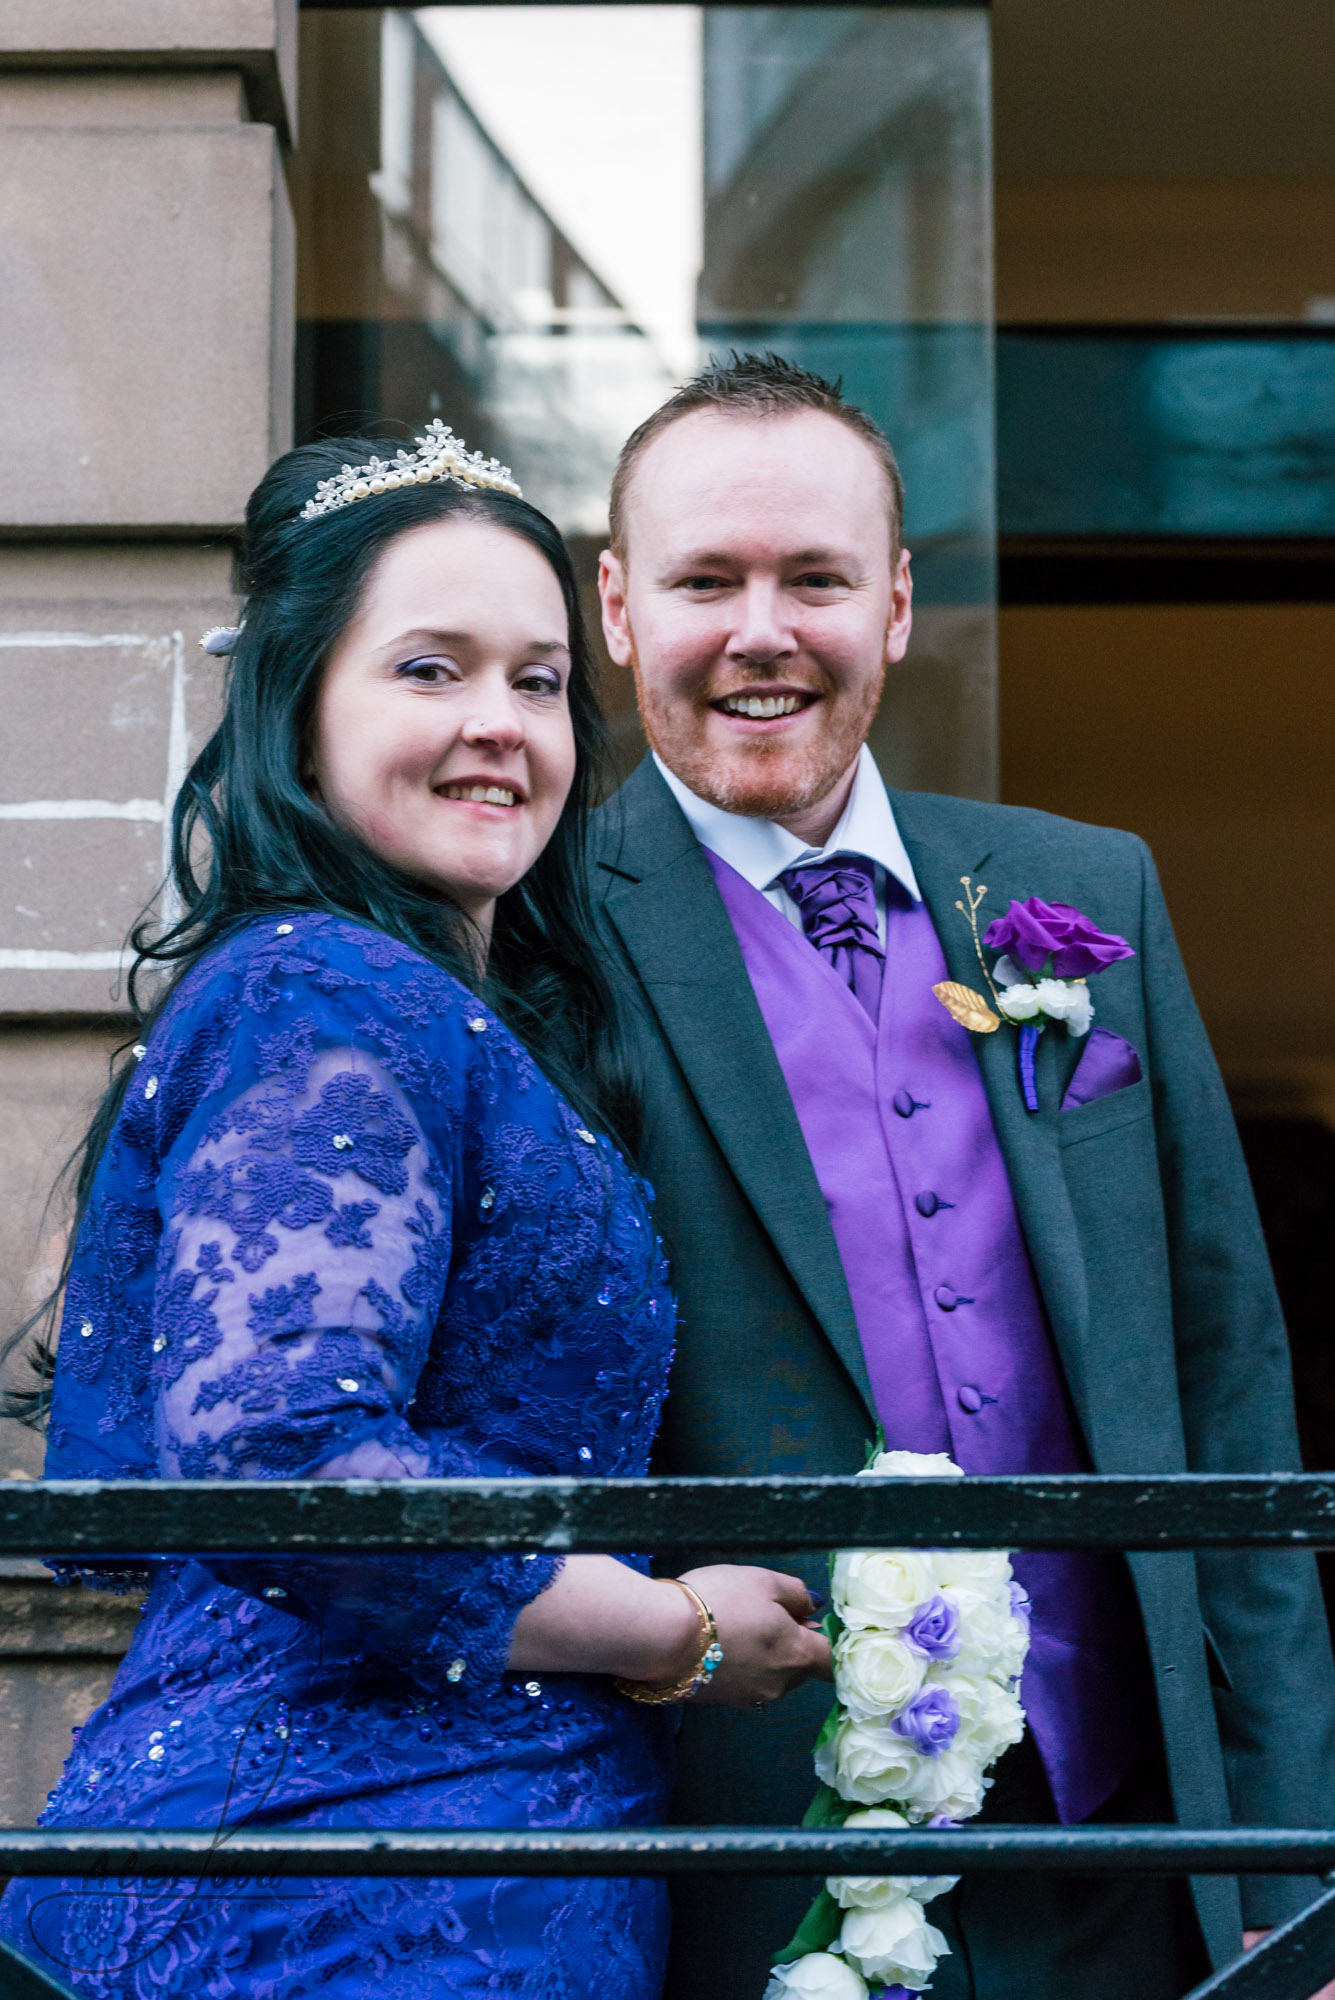 bride dressed in a purple dress and the groom in a dark grey suit stand outside their wedding venue